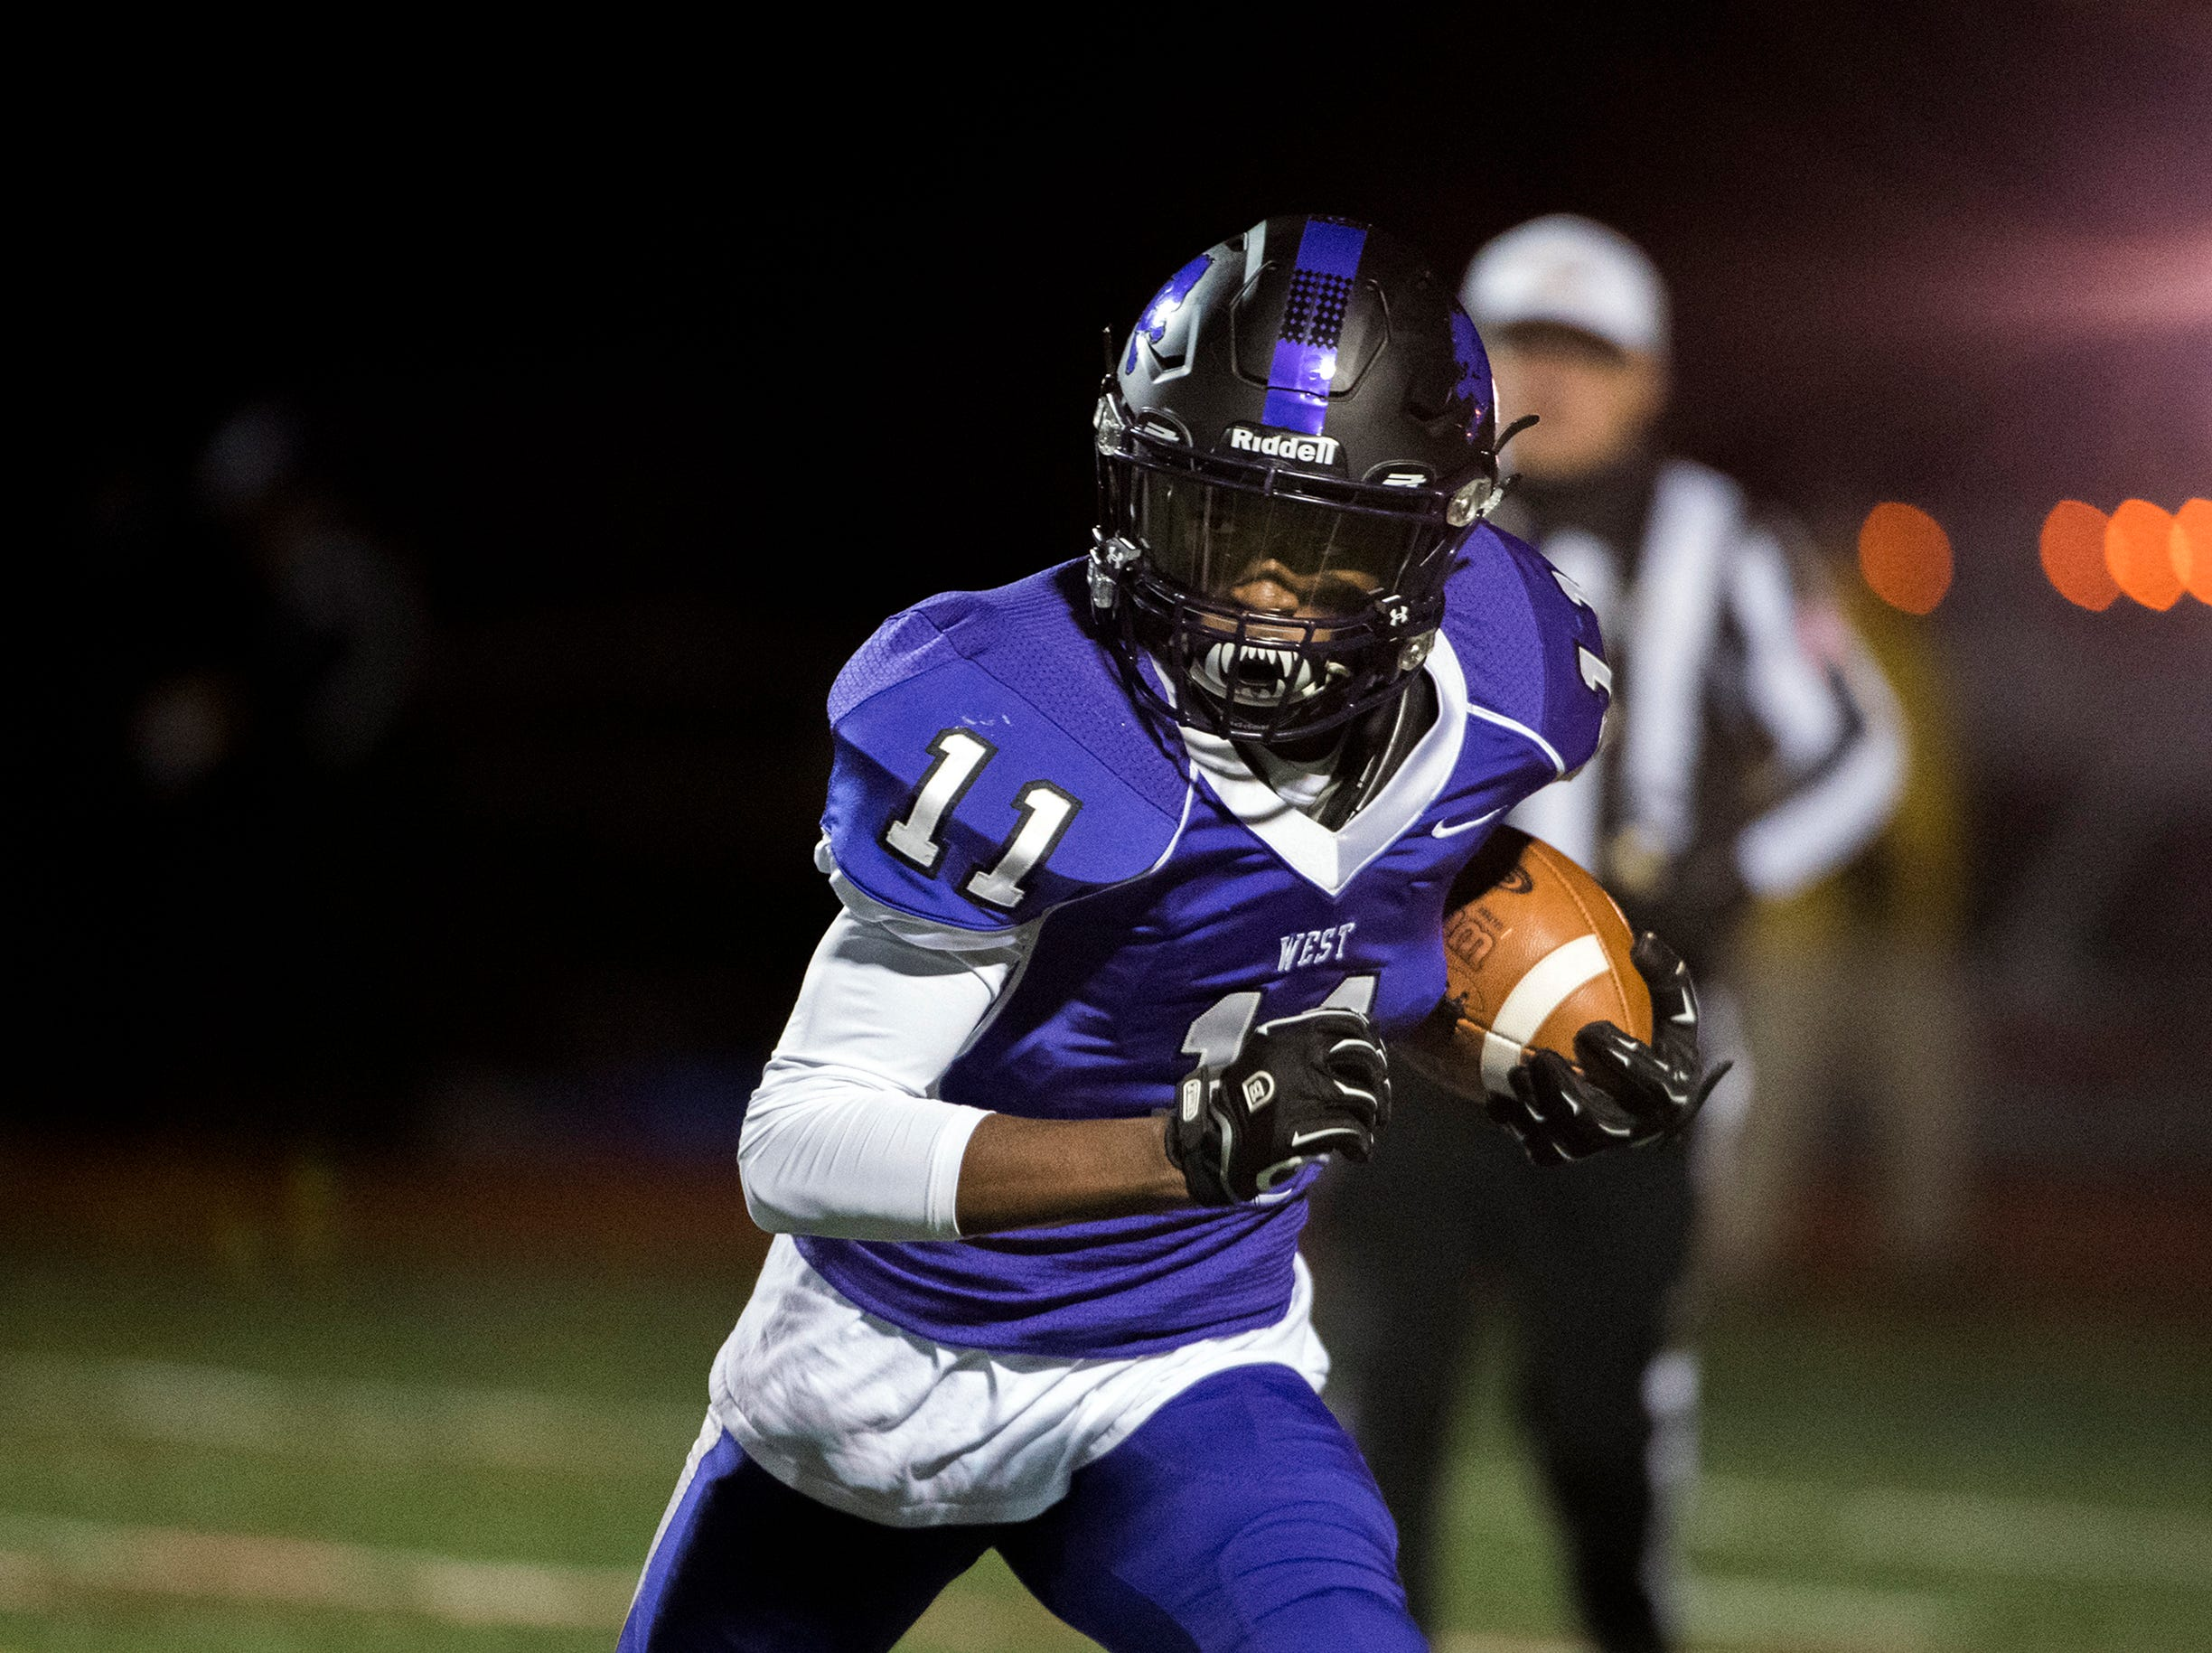 West's Hakim Melvin (11) receives the opening kickoff against East Wednesday, Nov. 21, 2018 at Cherry Hill West High School in Cherry Hill, N.J.